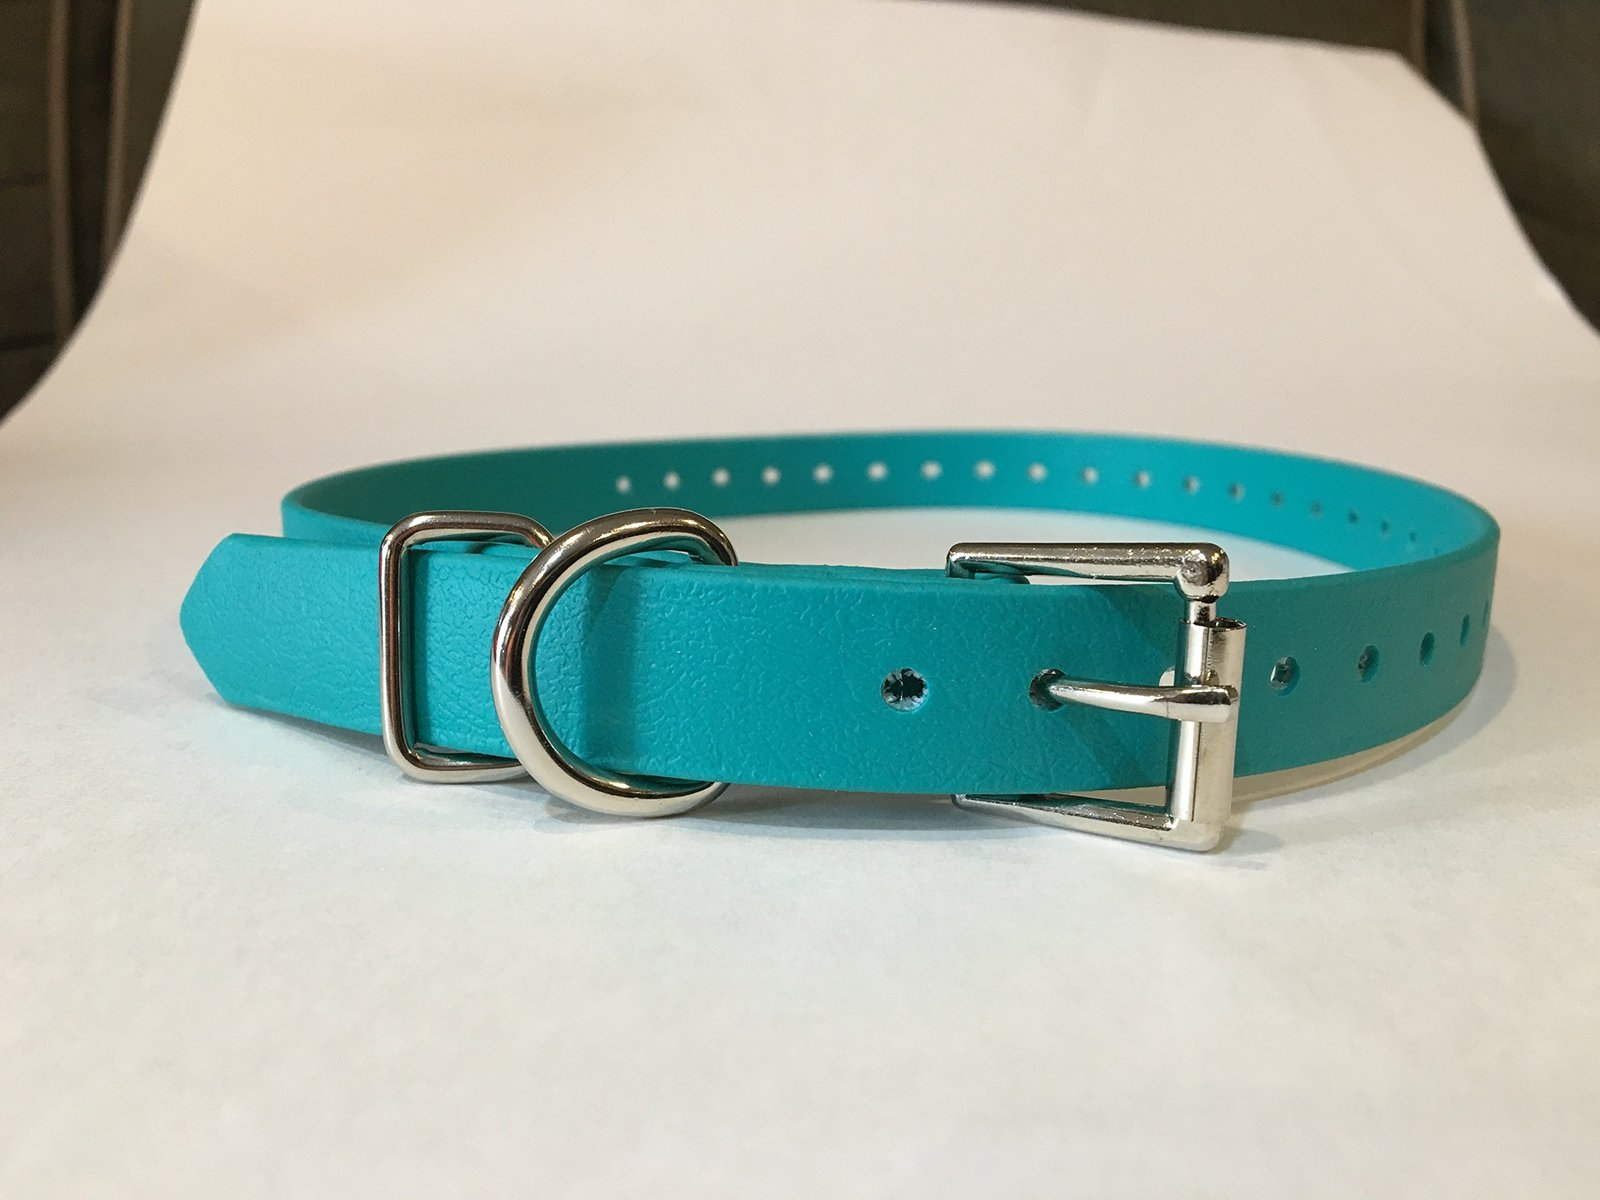 "Sparky PetCo 3/4"" Teal Biothane Replacement Square Buckle Dog Collar for Garm..."